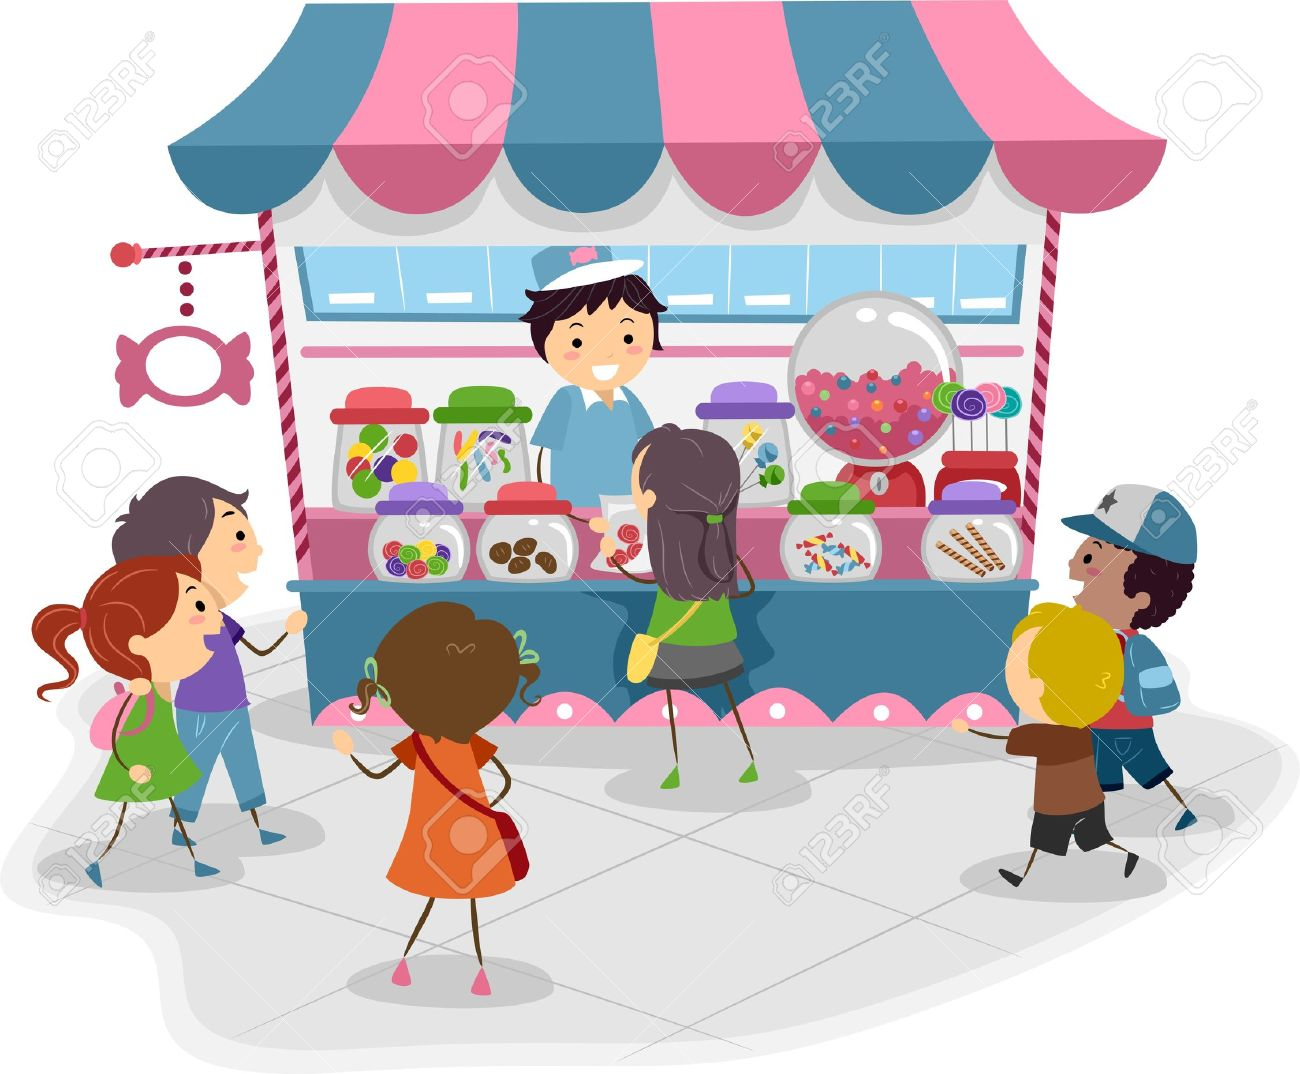 Illustration of Kids Heading to a Candy Store Stock Illustration - 11197759